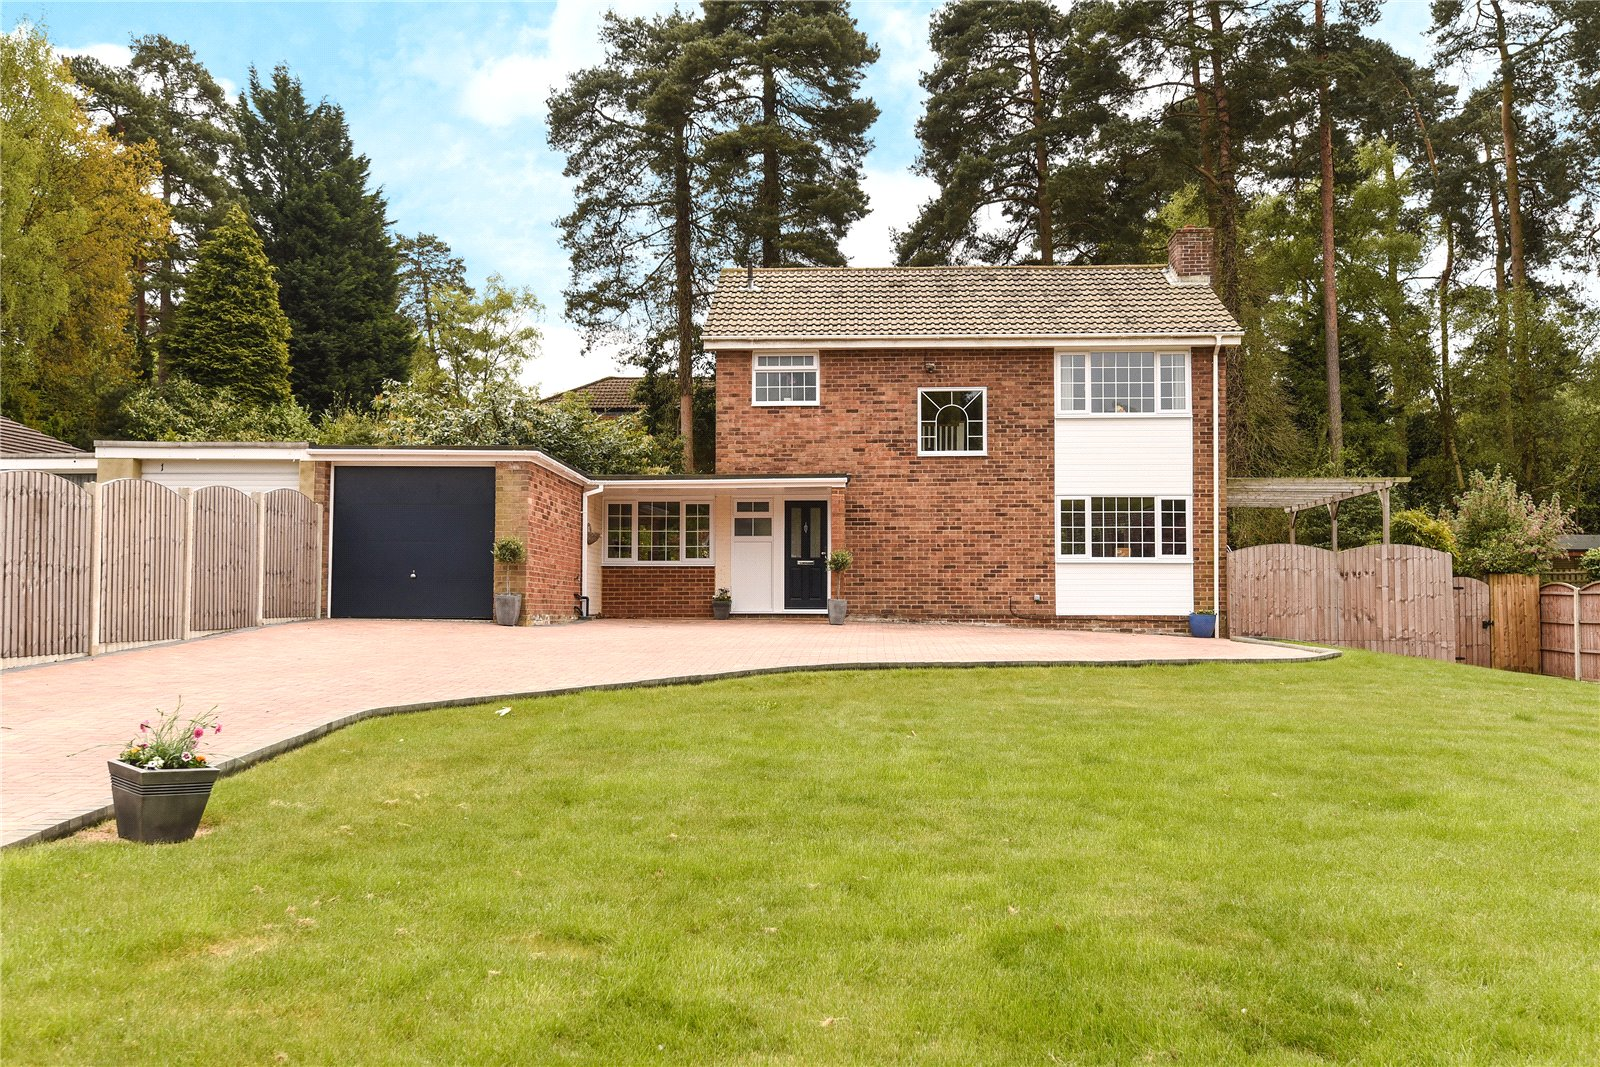 3 Bedrooms Detached House for sale in Clewborough Drive, Camberley, Surrey, GU15